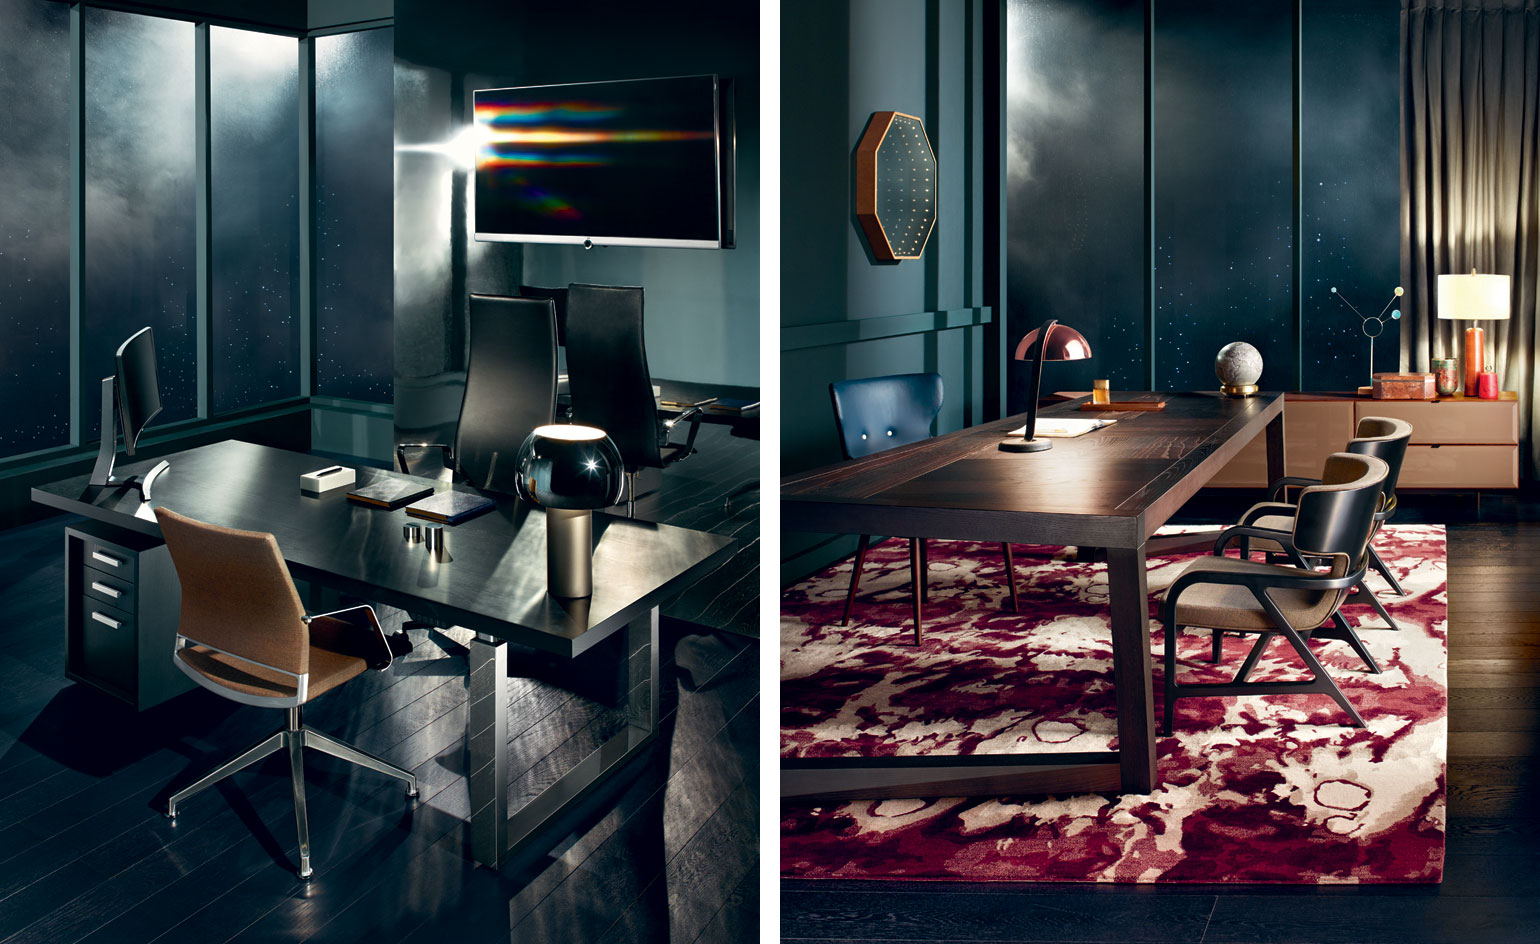 High office: perfectly tailored suites for our top-level execs